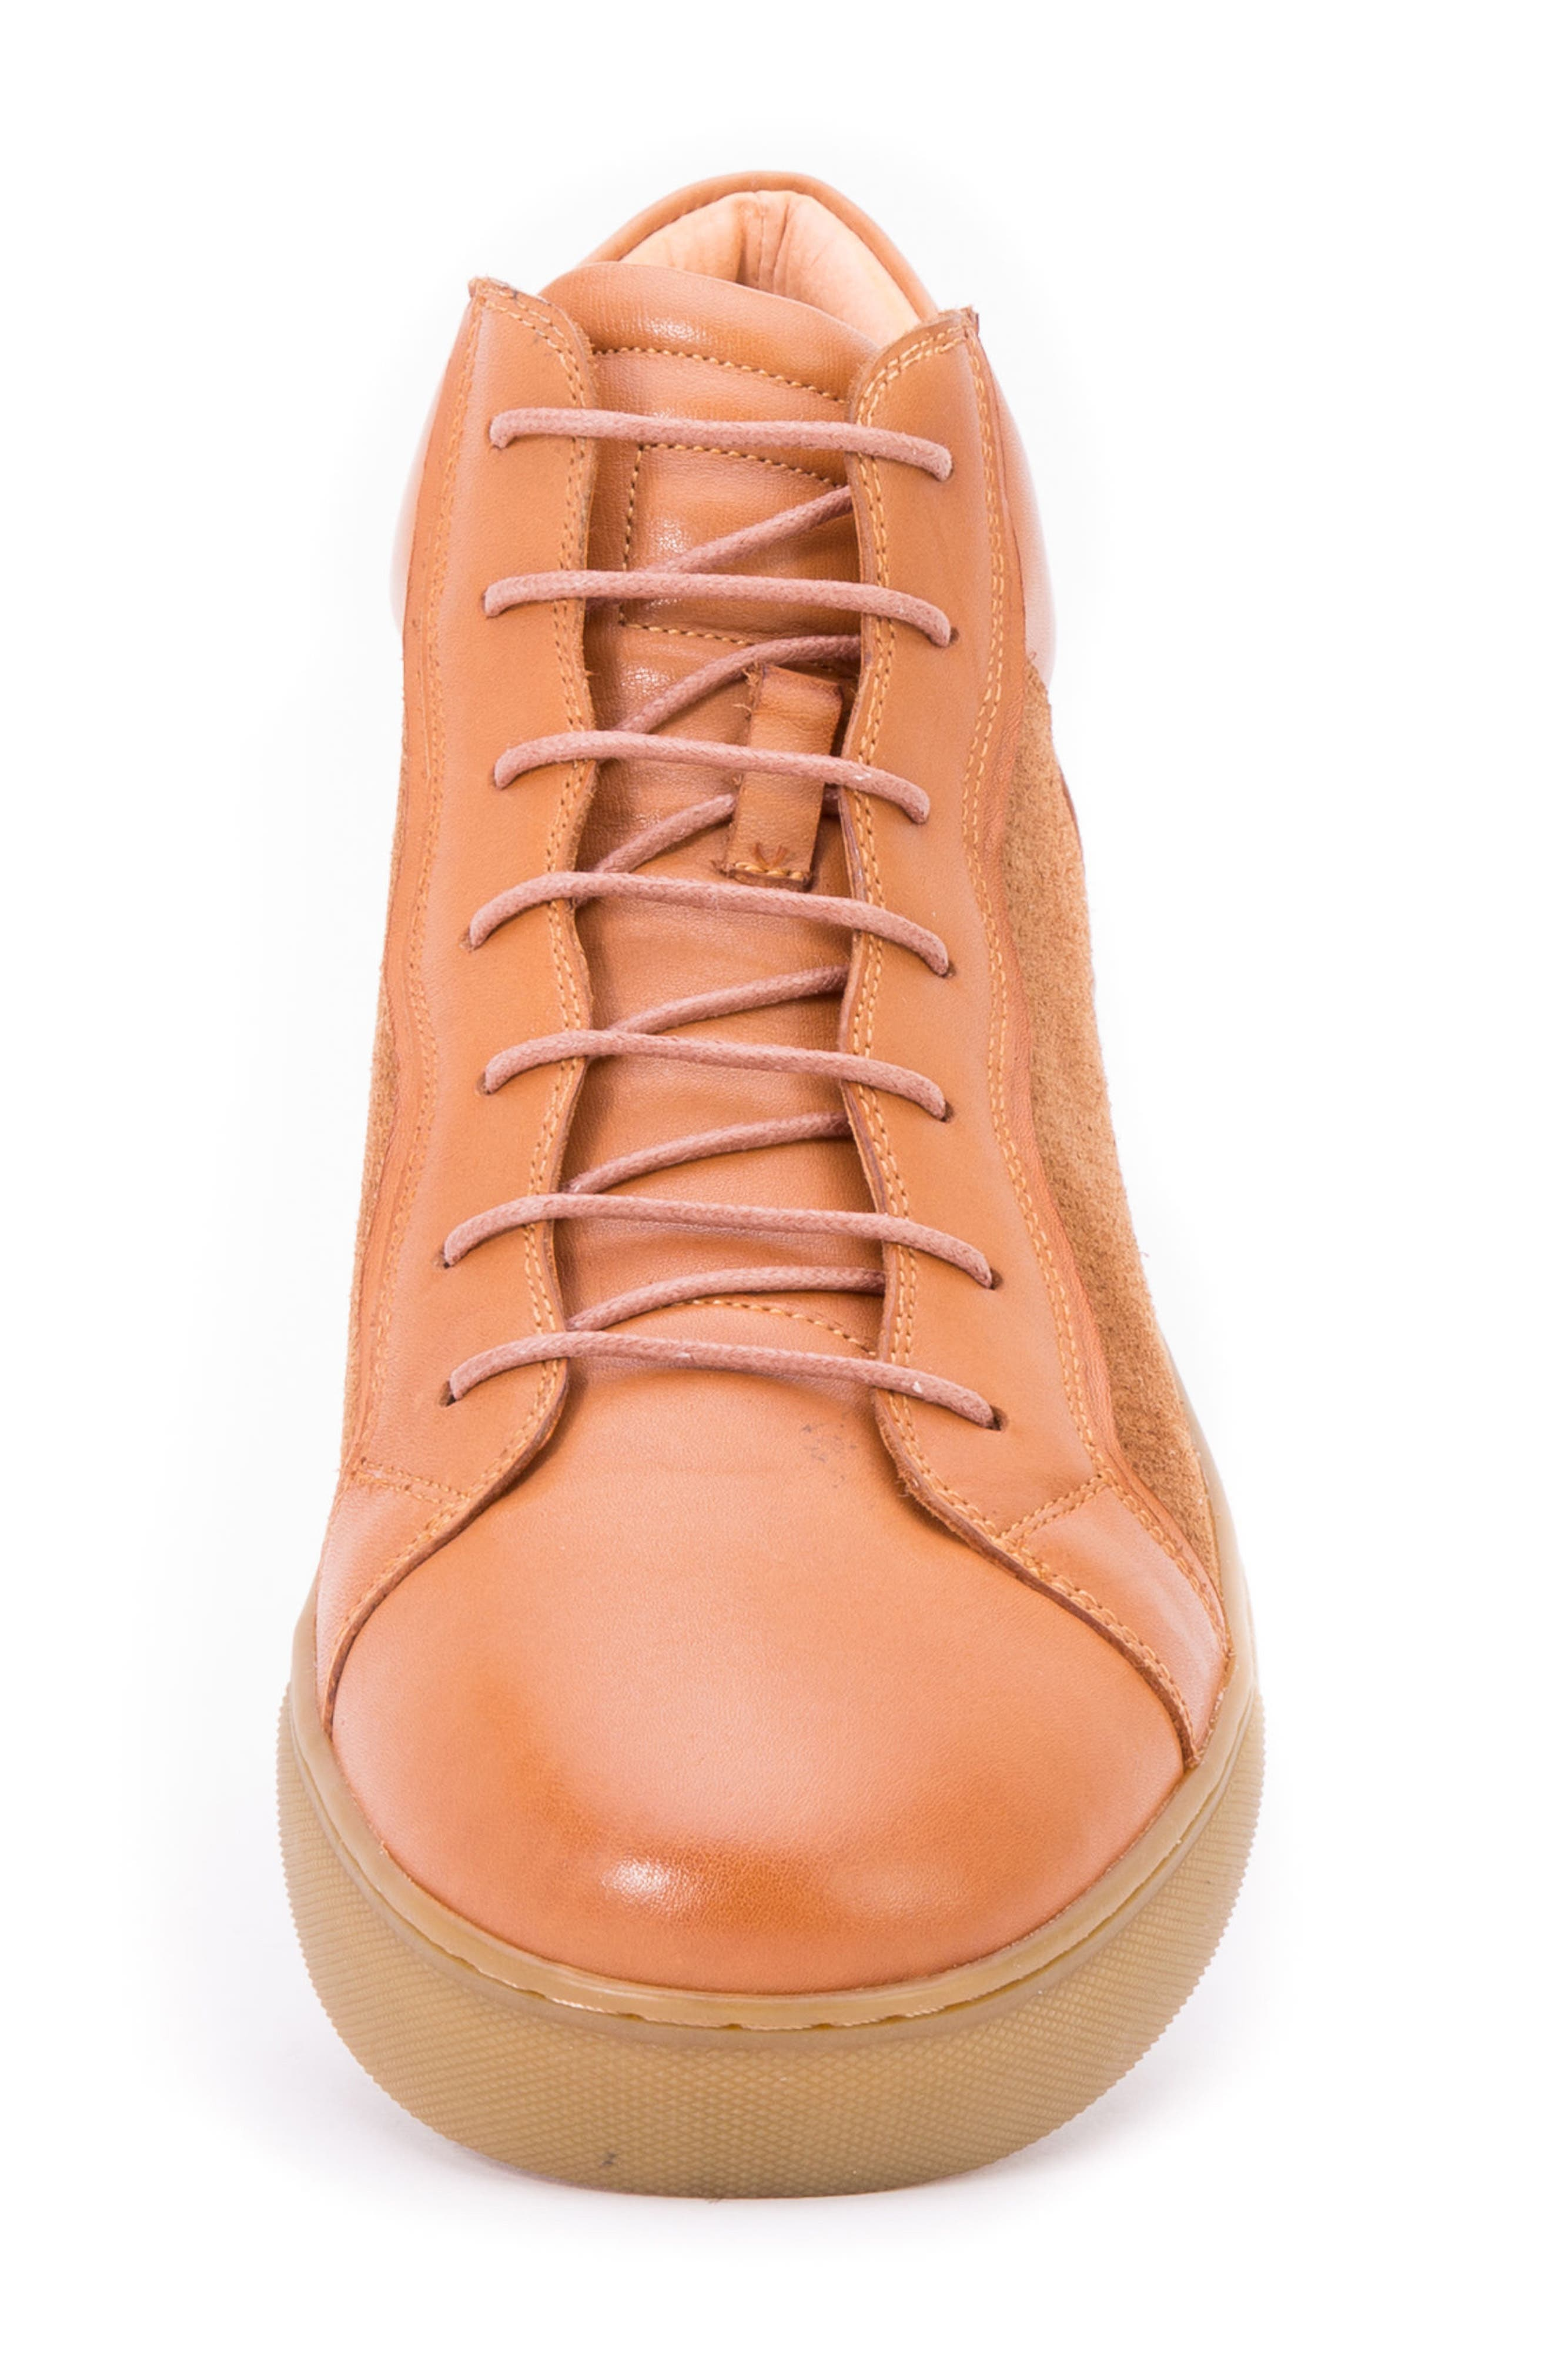 Twist Perforated High Top Sneaker,                             Alternate thumbnail 3, color,                             Cognac Leather/ Suede